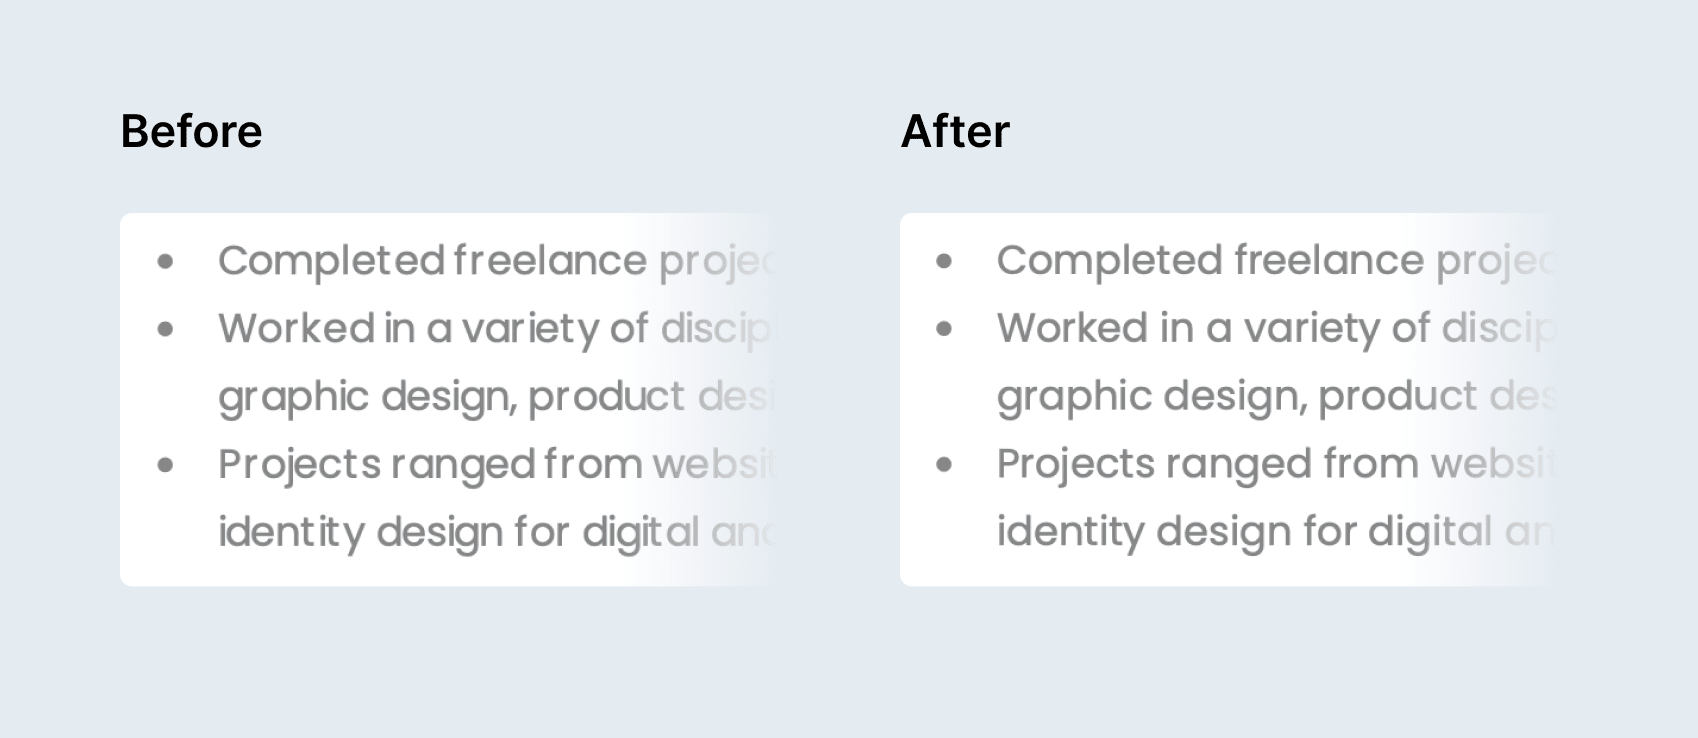 Comparing resume PDF typography before and after